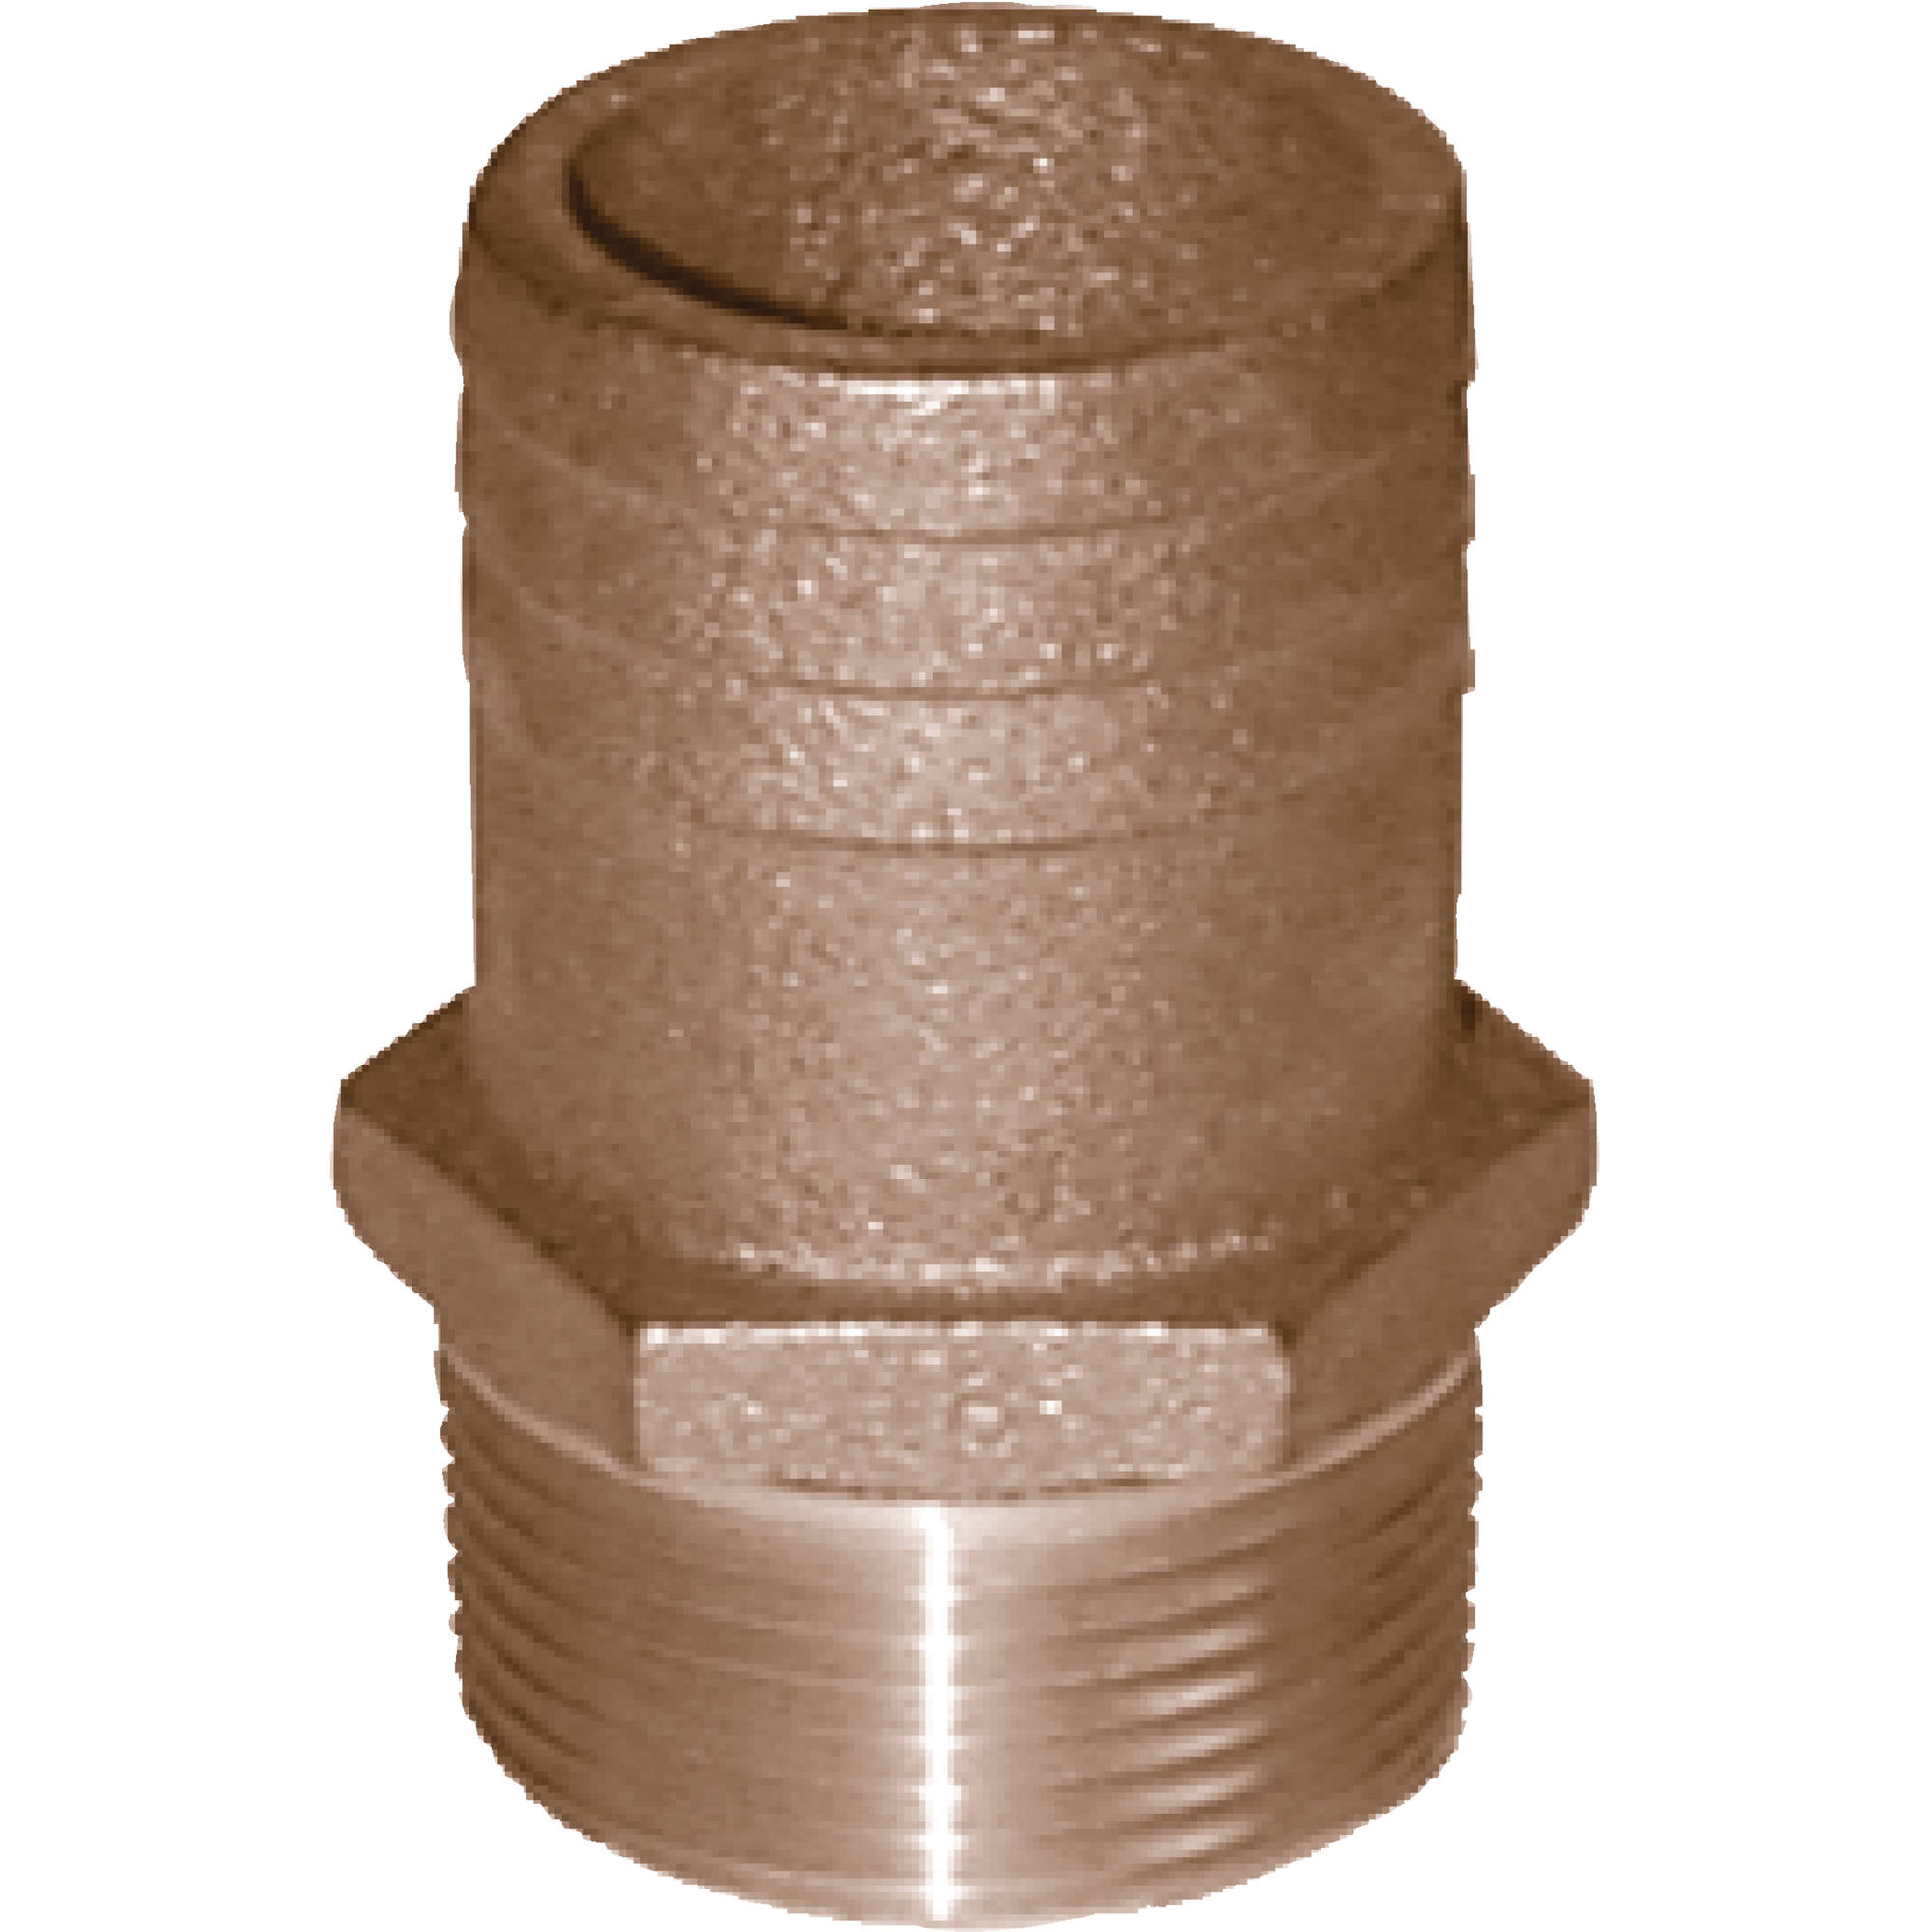 Groco FF Bronze Full Flow Pipe-to-Hose Adapter with NPT Thread